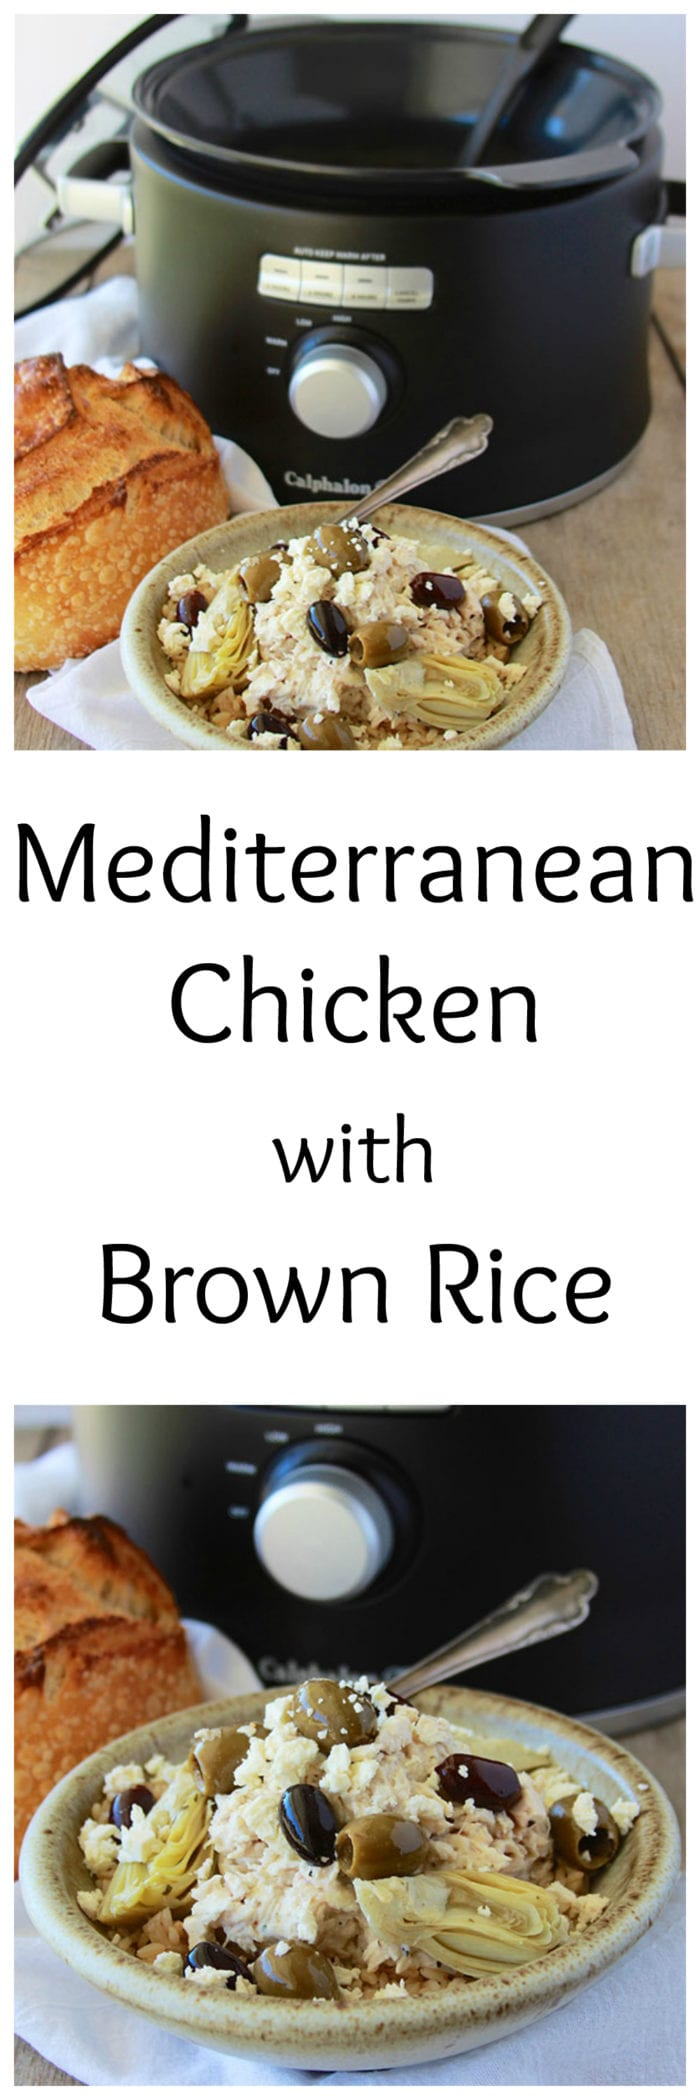 Mediterranean Chicken with Brown Rice is a slow cooker recipe that will become a regular at your dinner table! Delish!! www.cookingwithruthie.com #MyCalphalonKitchen #CollectiveBias #ad